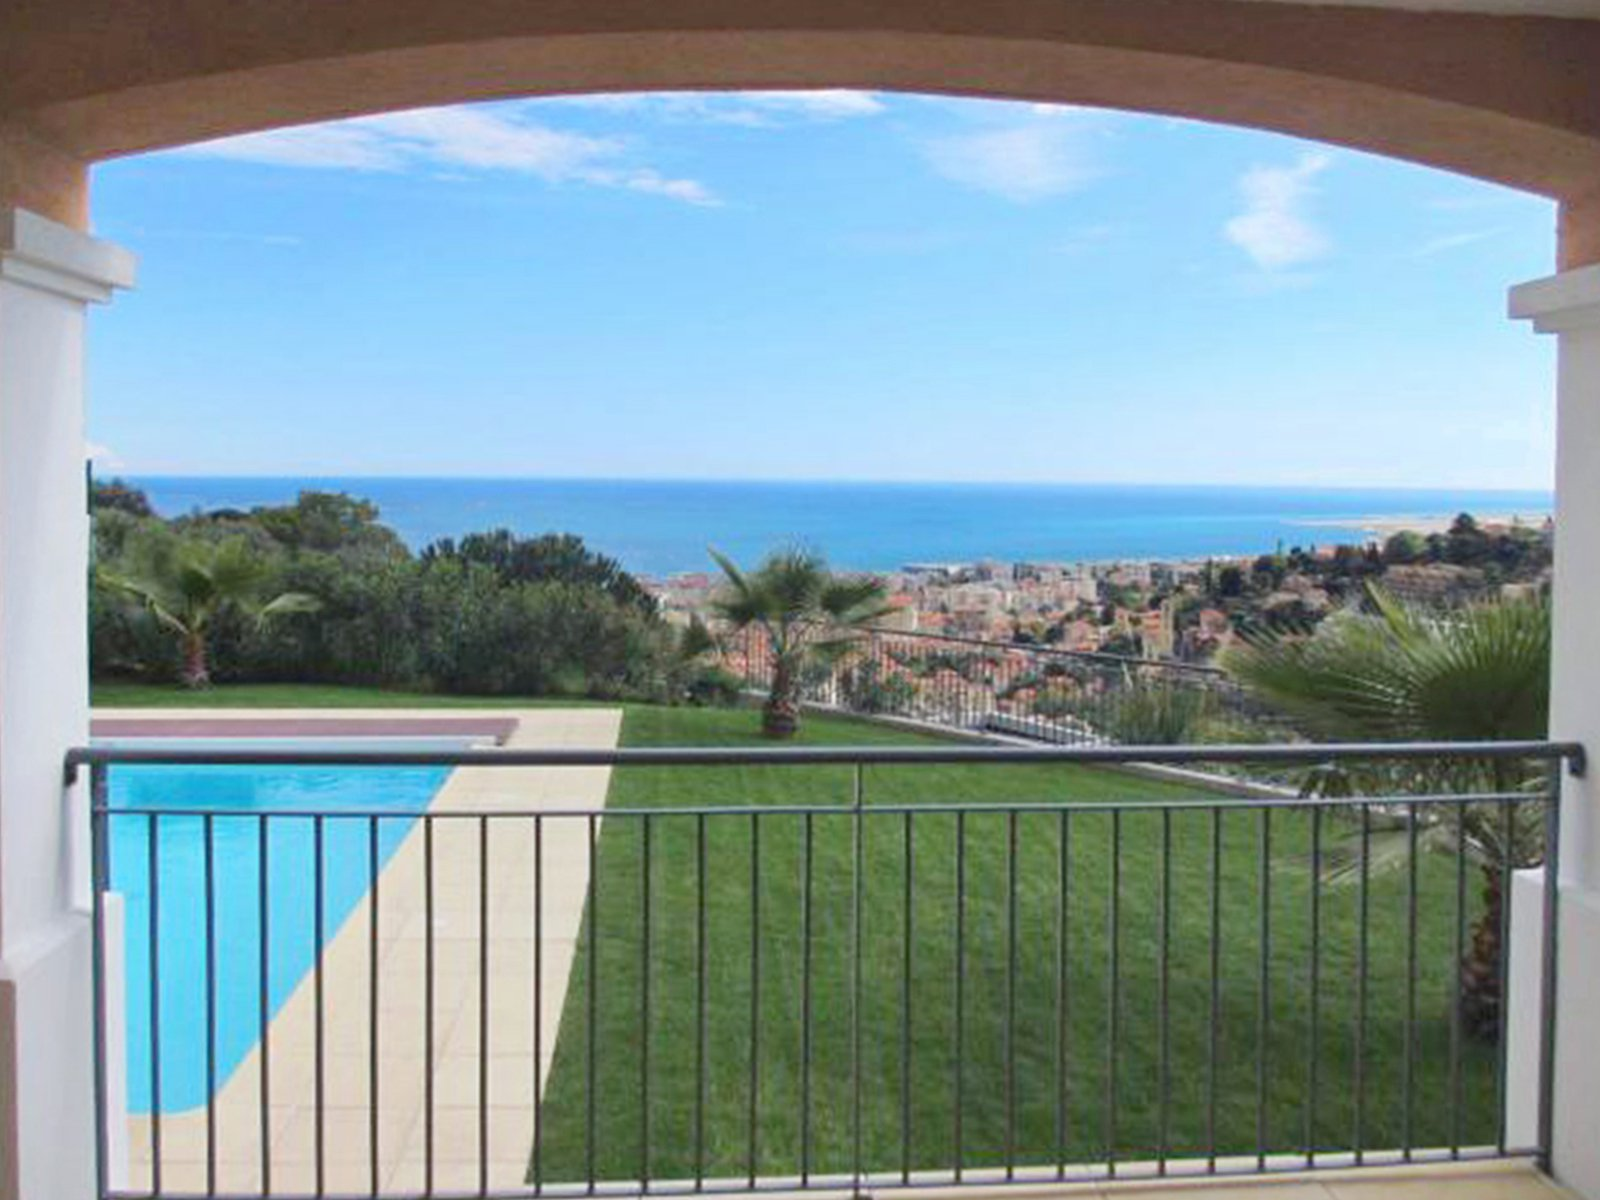 Nice Hills Saint Philippe - moderne villa with overlooking views on sea and hills